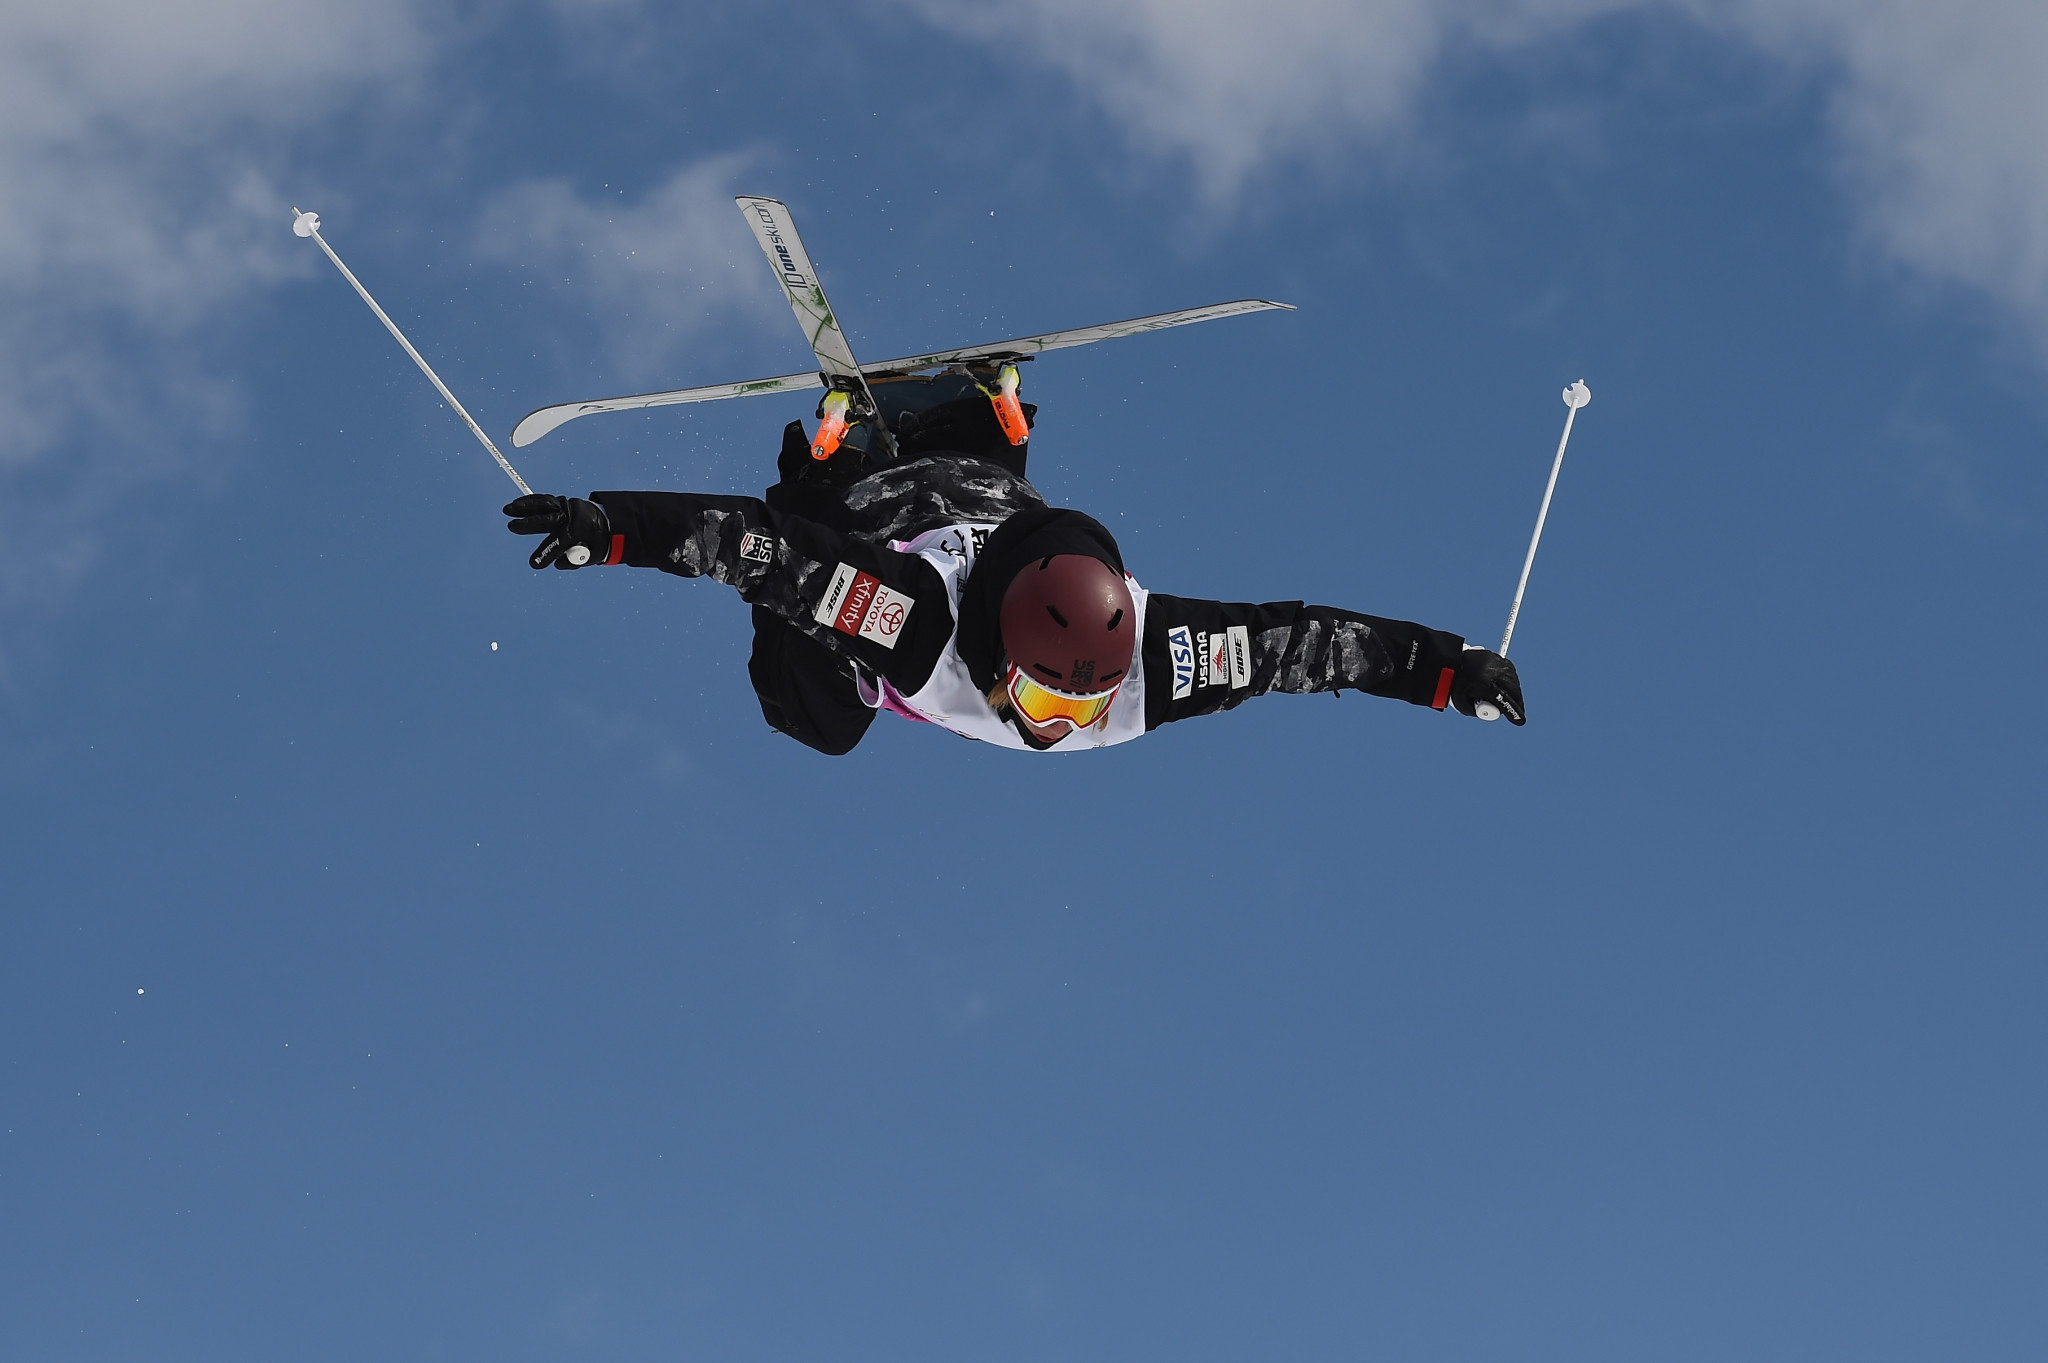 Jesse Andringa won both the men's moguls and double moguls at this year's event ©Getty Images